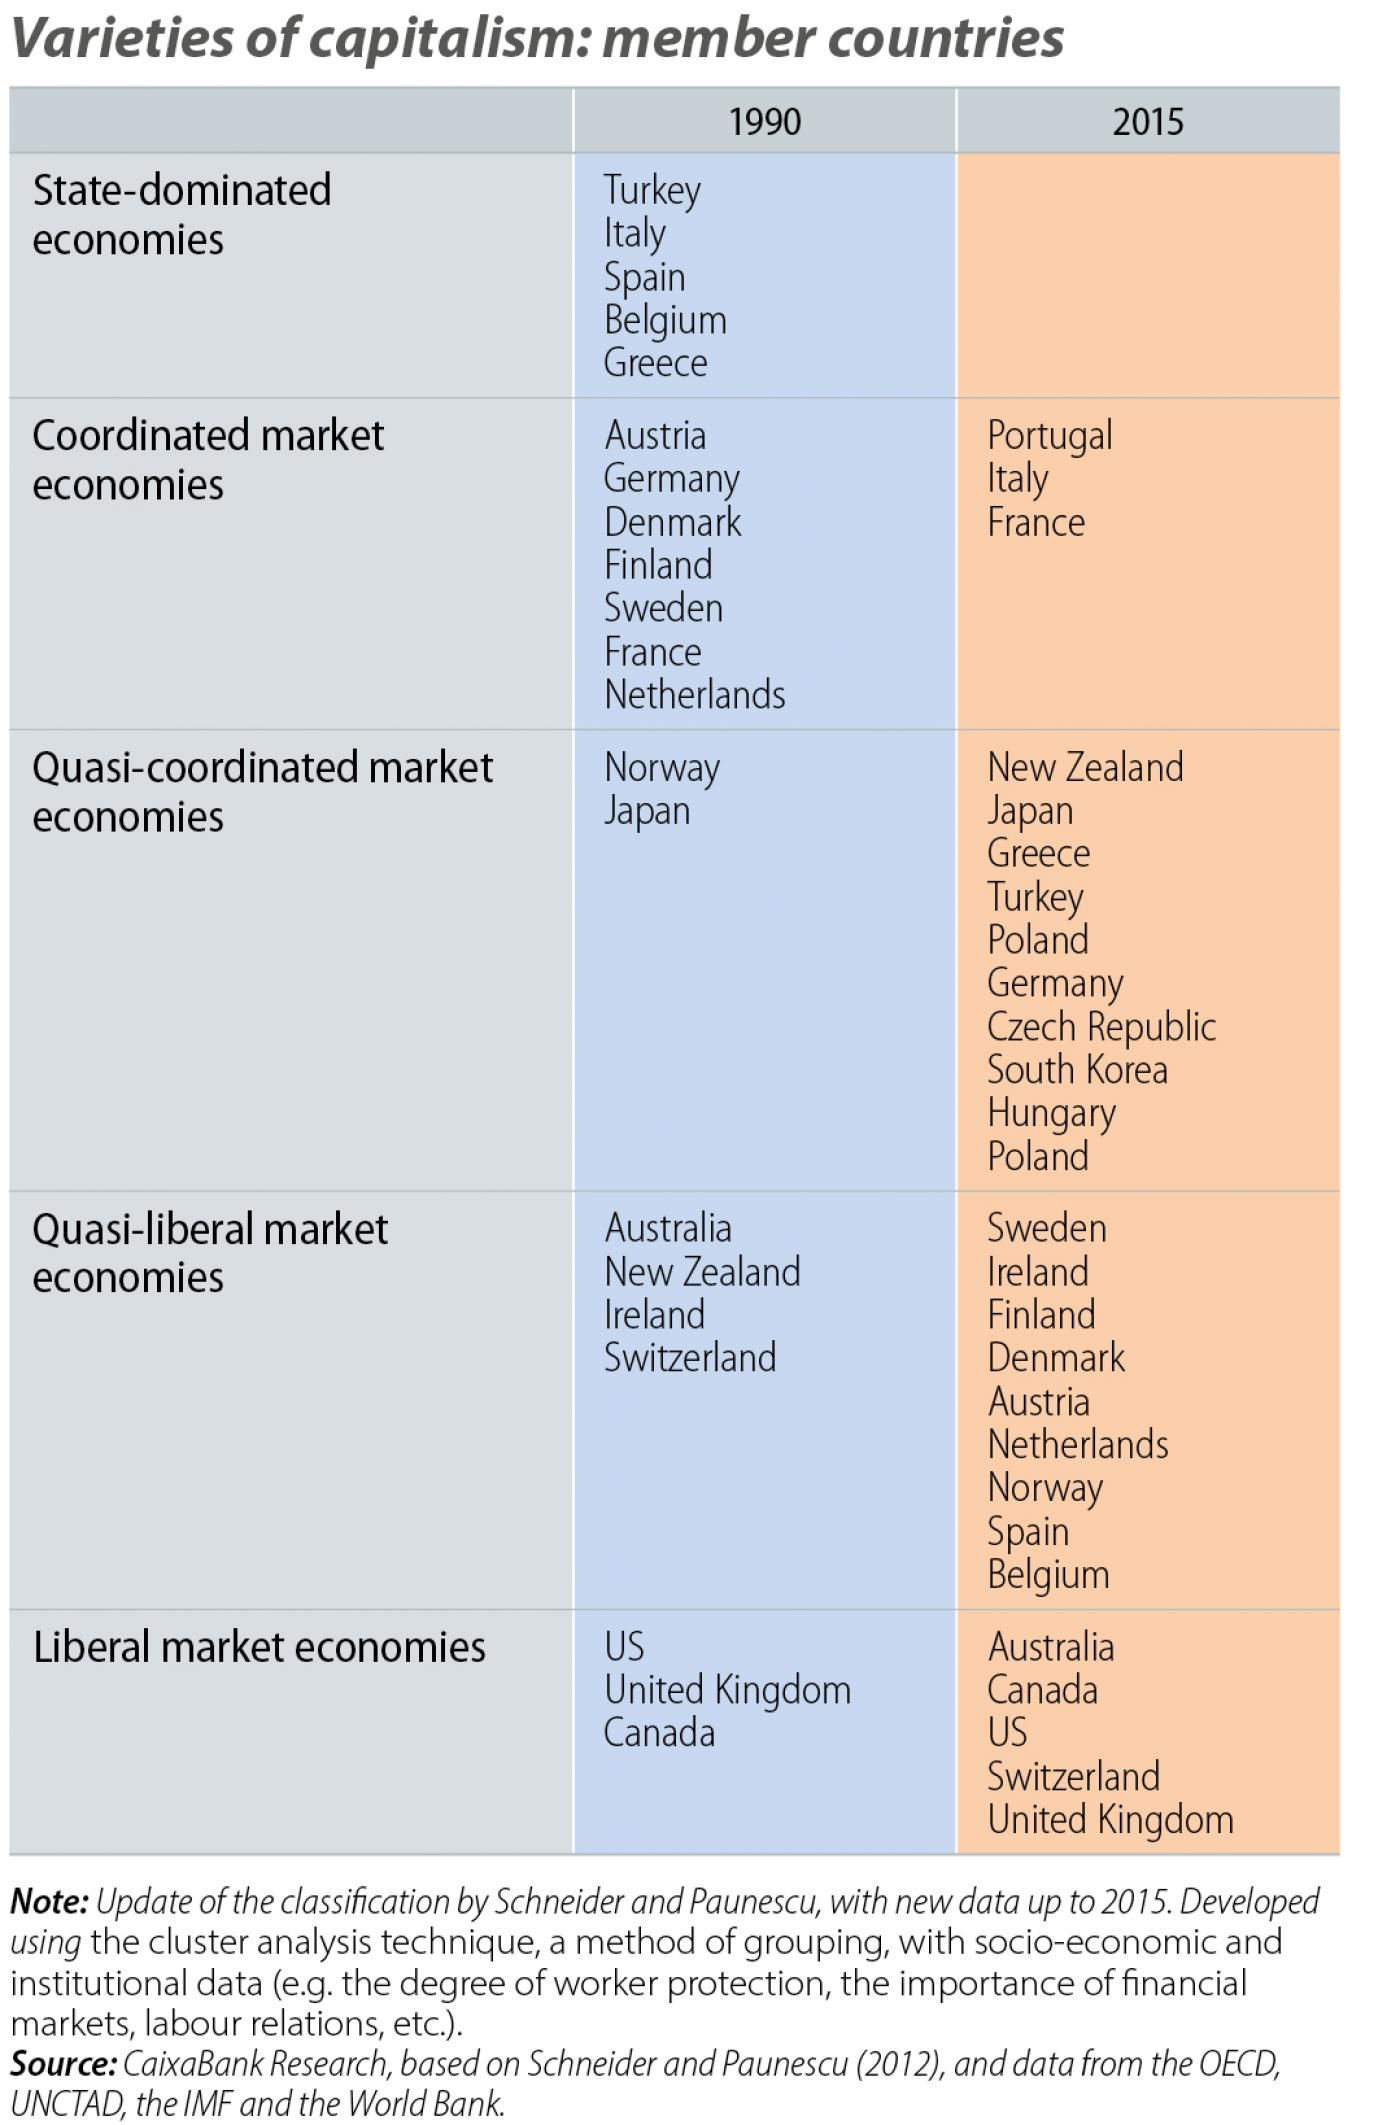 Variation of capitalism: member countries